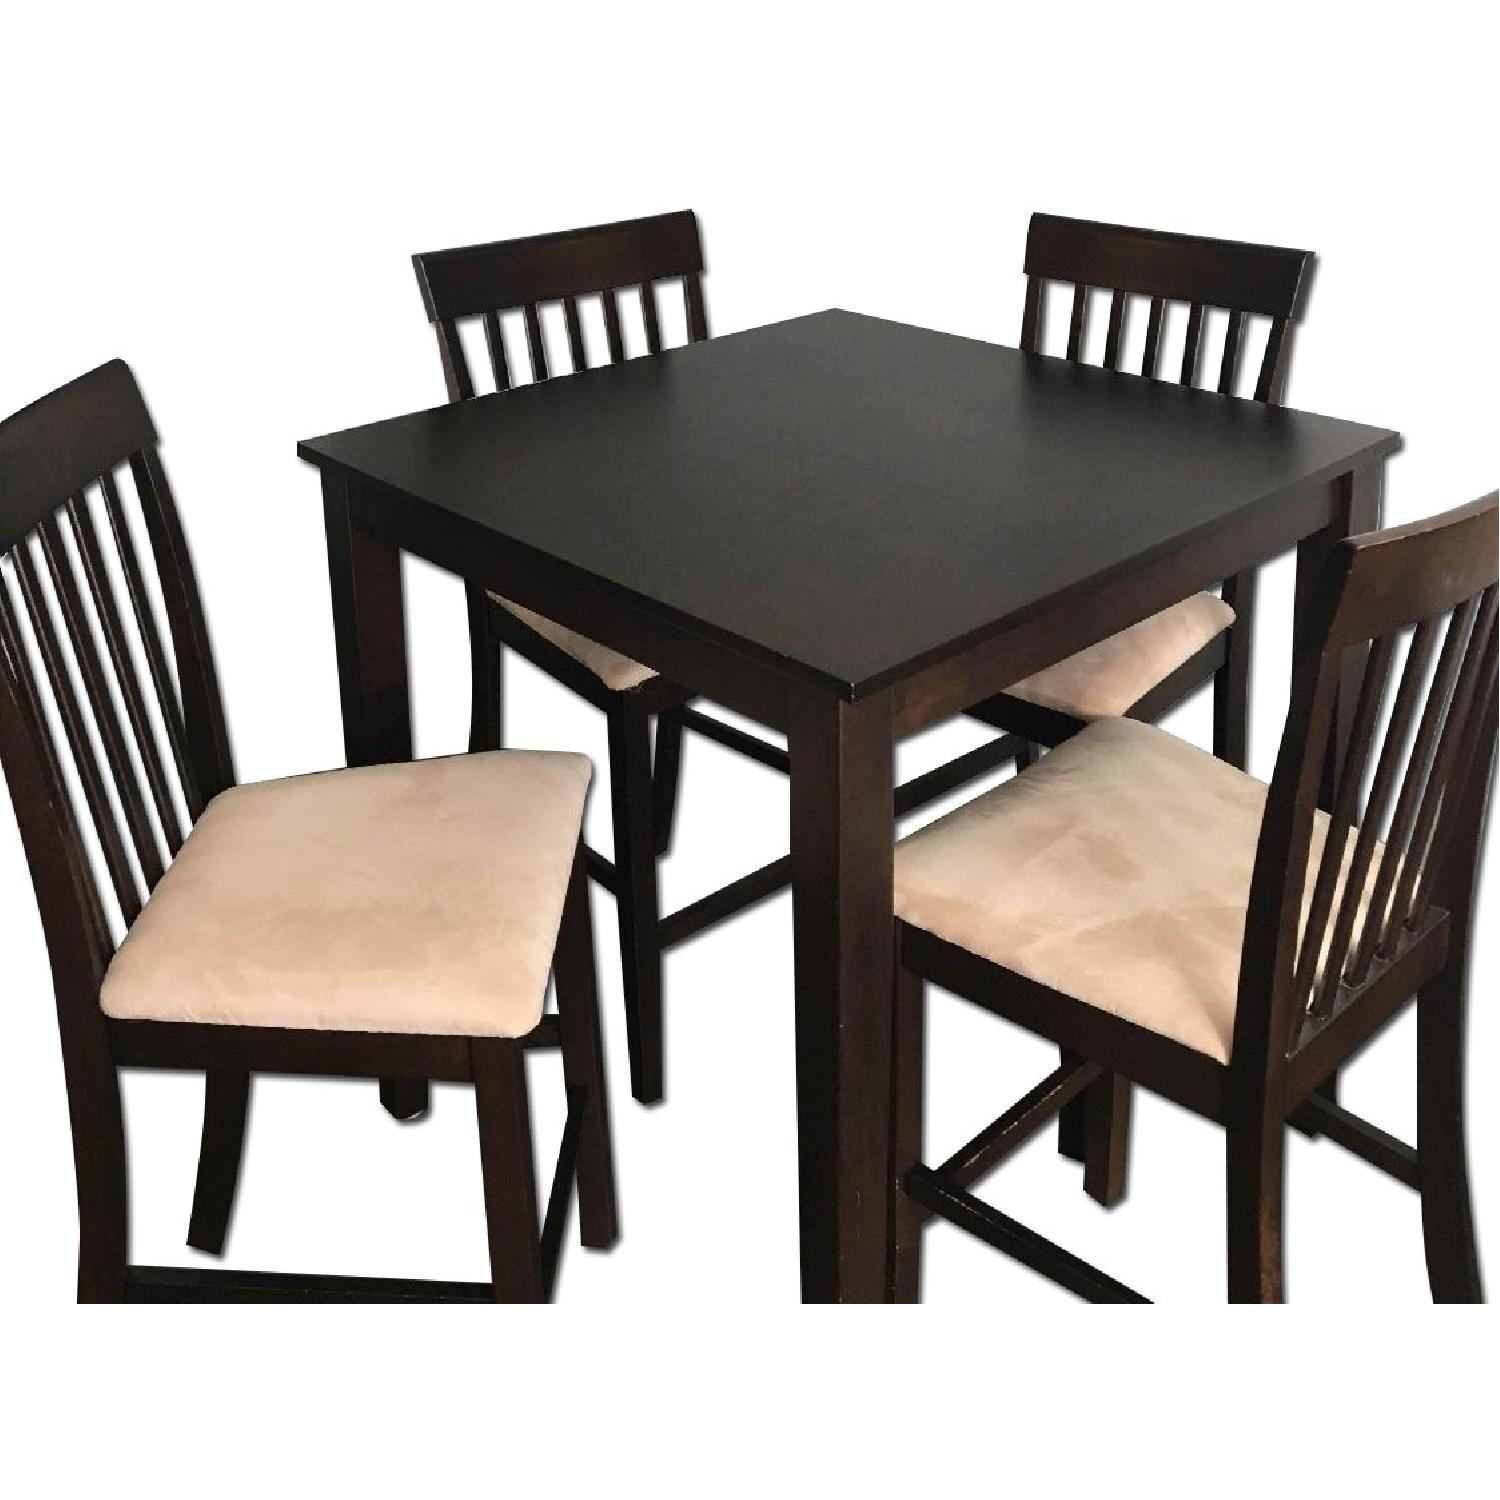 The Door Store Solid Wood 5 Piece Counter Height Dining Set - image-0